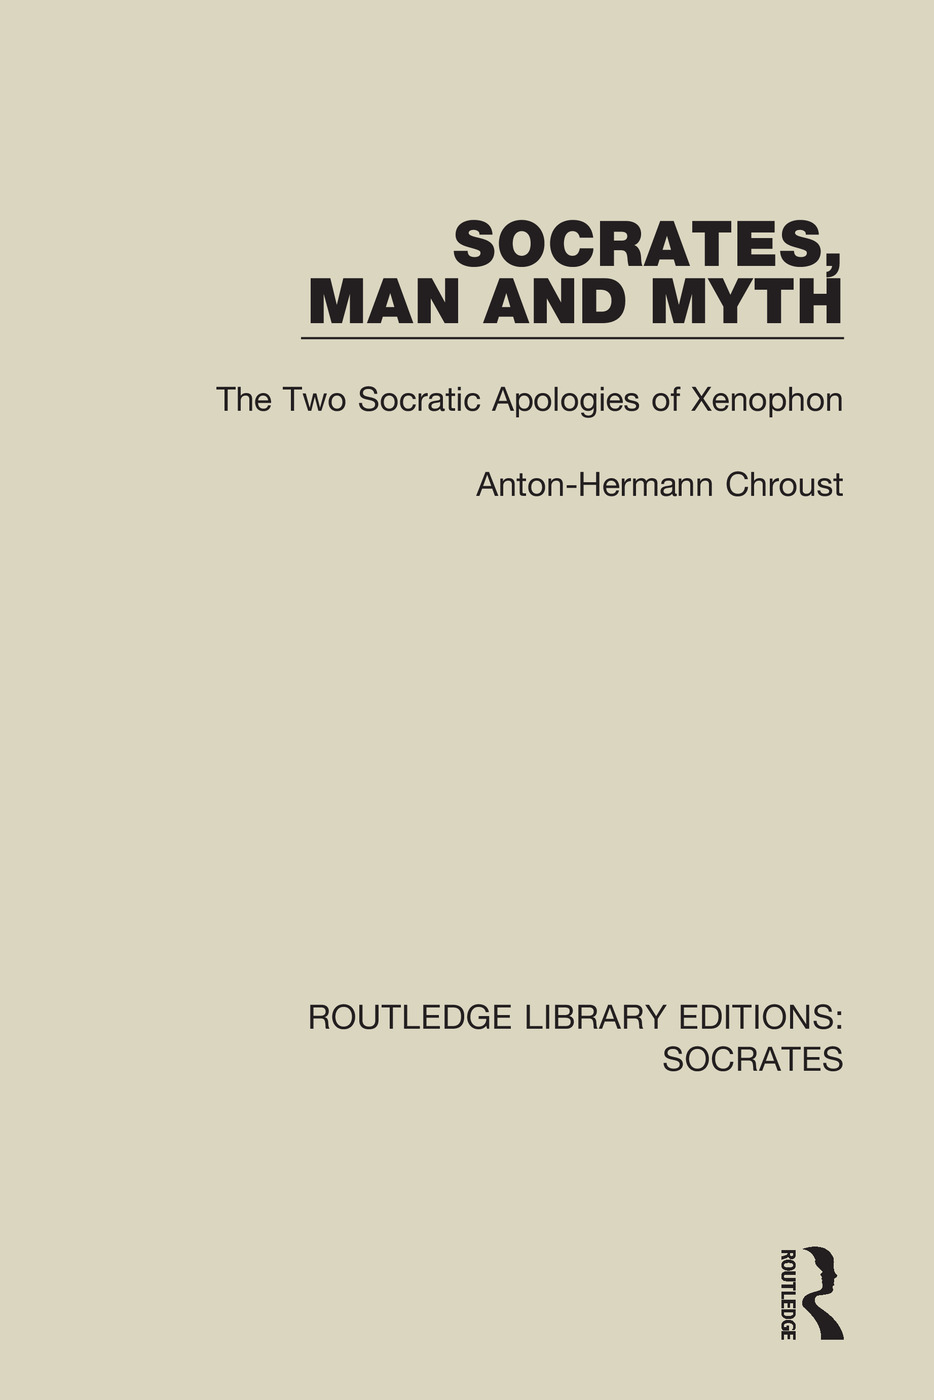 Socrates, Man and Myth: The Two Socratic Apologies of Xenophon book cover